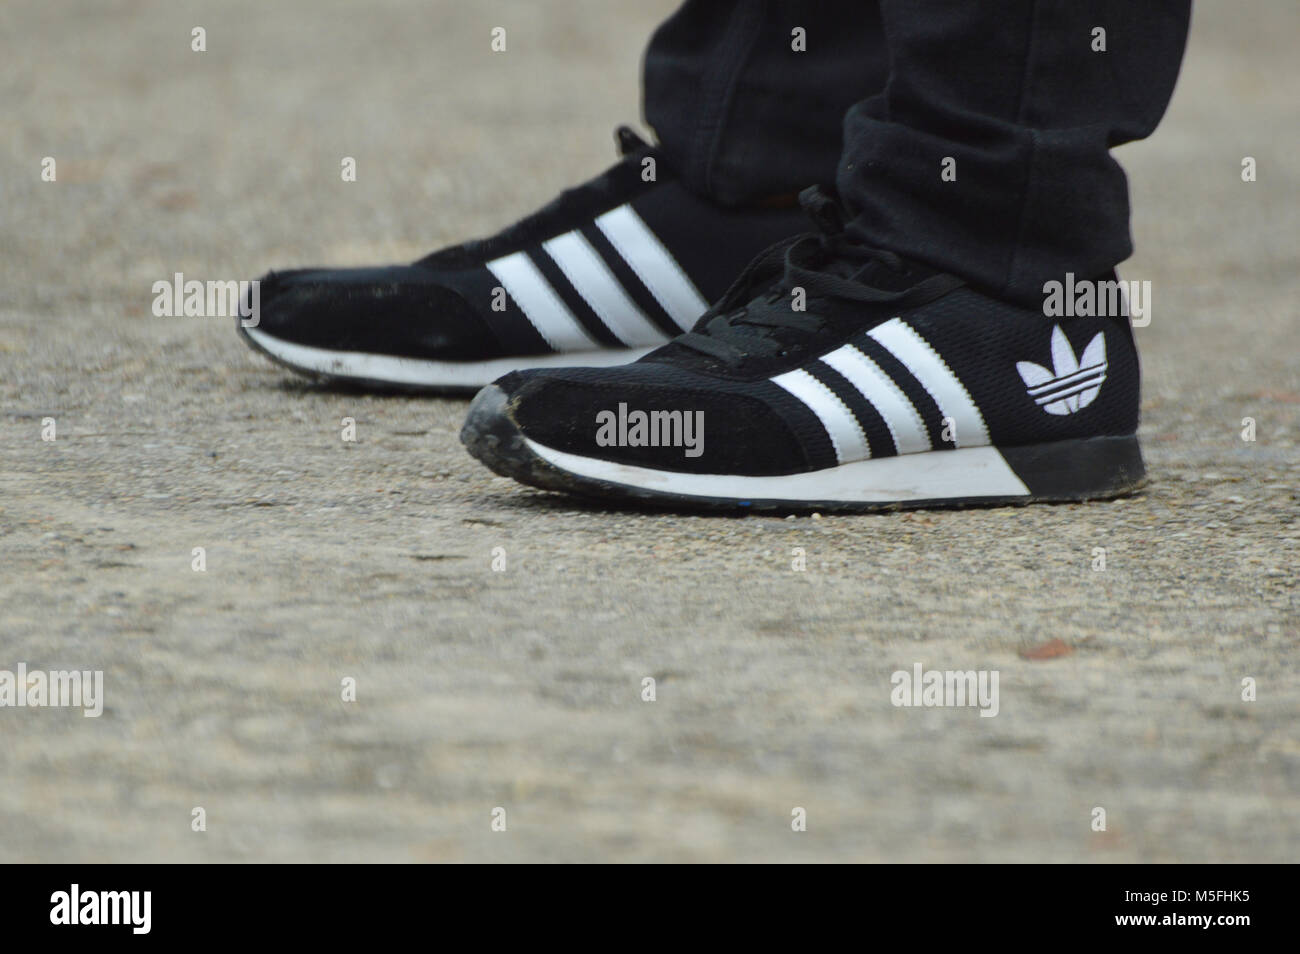 Adidas Black And White Shoes Stock Photos & Adidas Black And